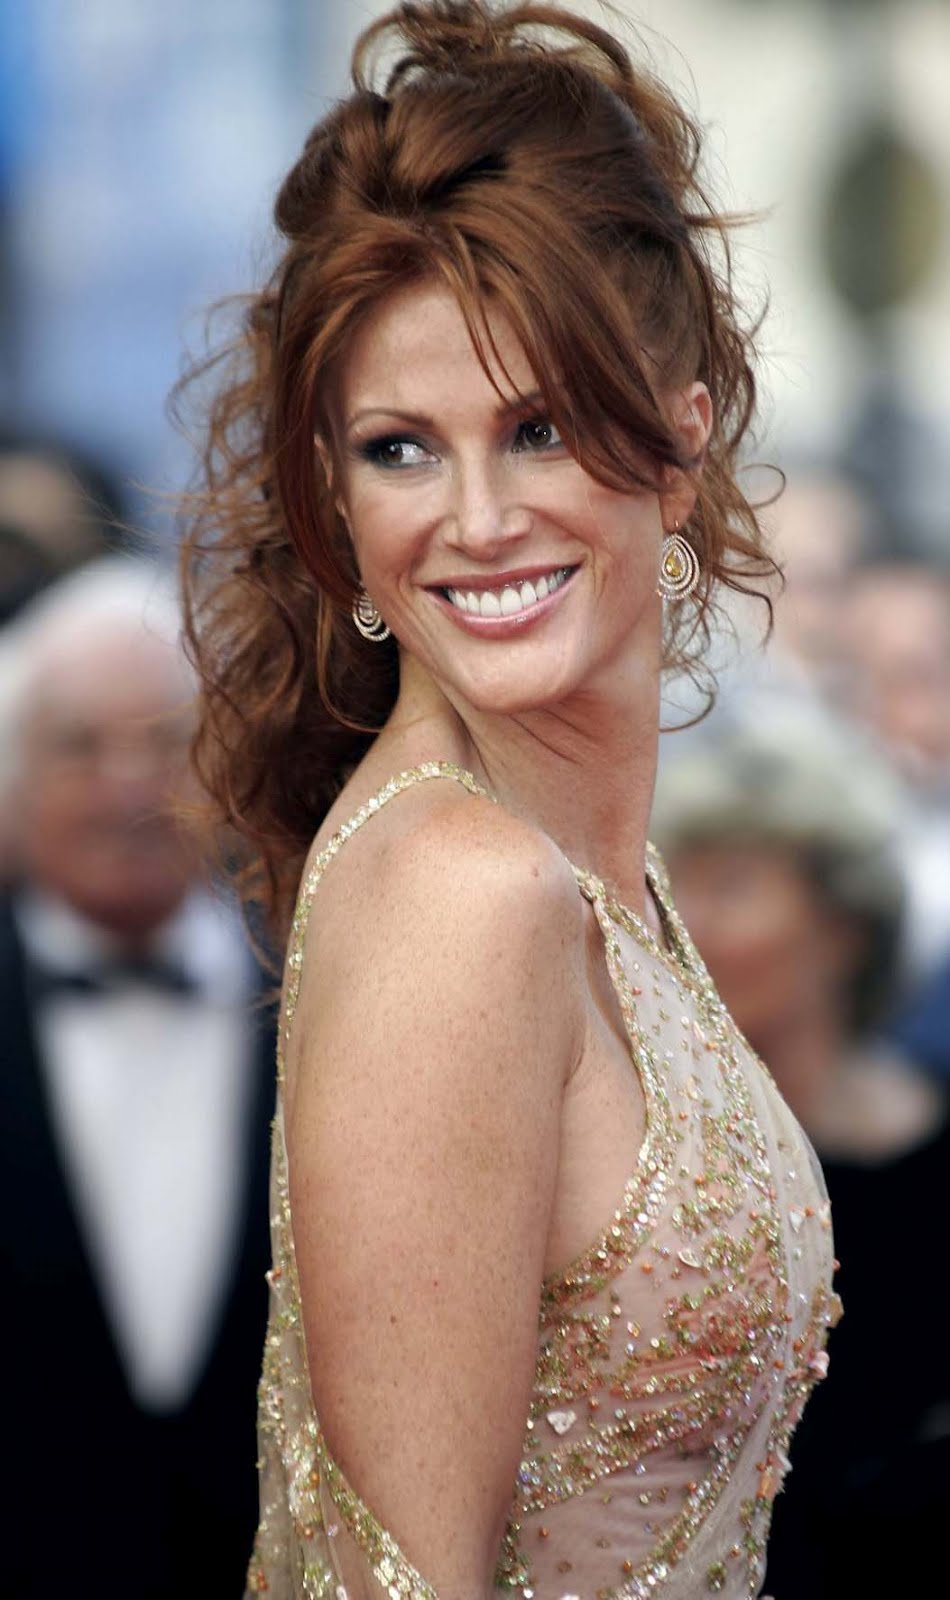 Angie Everhart Playboy celebrities flash: angie everhart